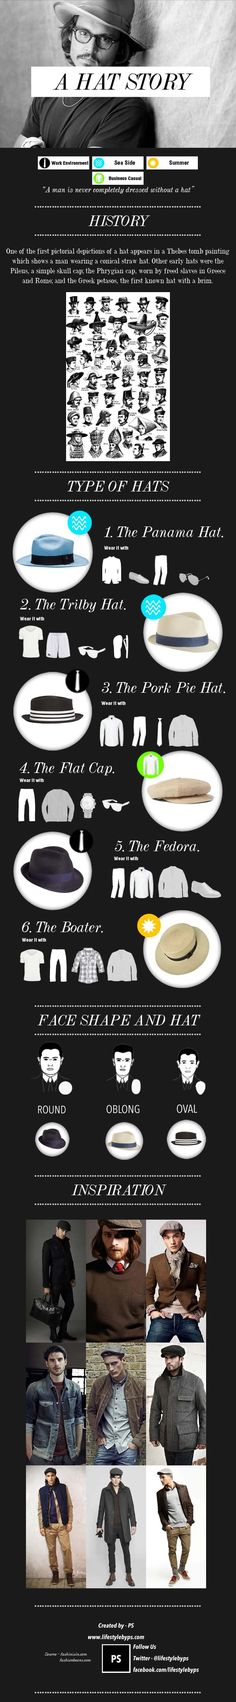 A Hat Story - Men's Guide to Hats Once perceived as a sign of distinction, promoting the idea of absolute elegance and setting the social classes